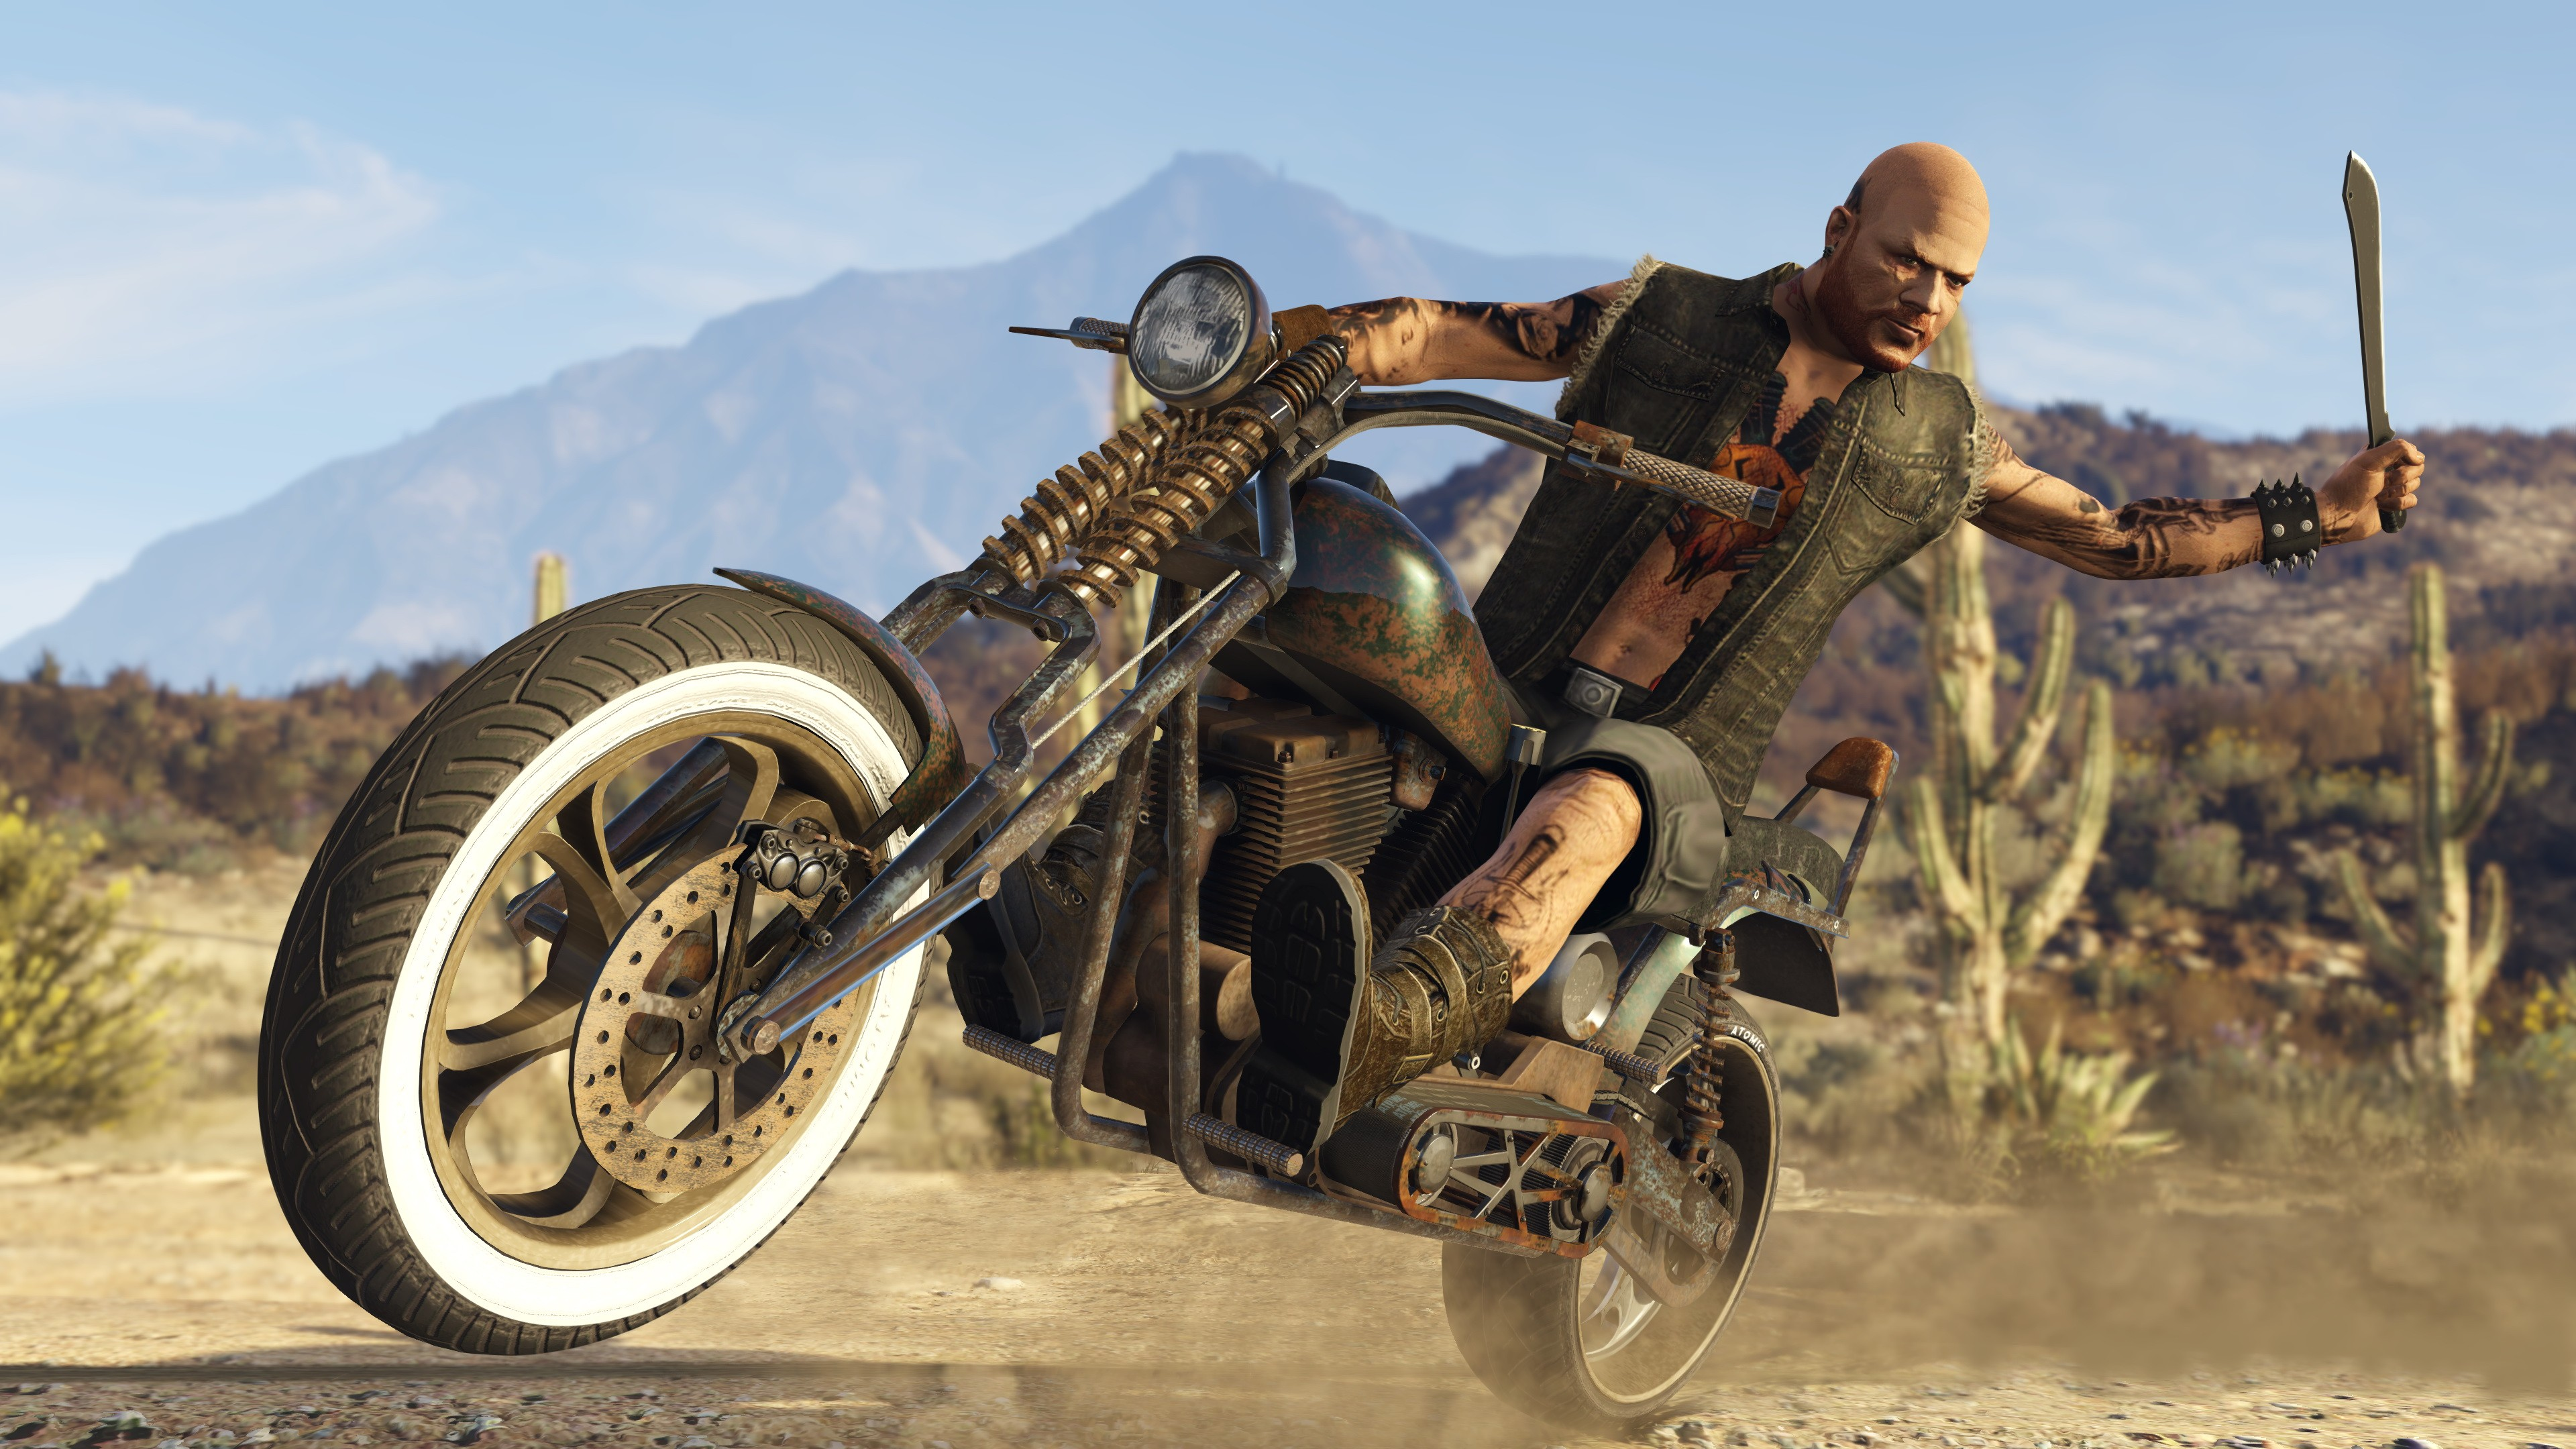 Bikers Quotes Wallpapers Wallpaper Gta Online Bikers Gta Gta 5 Best Games